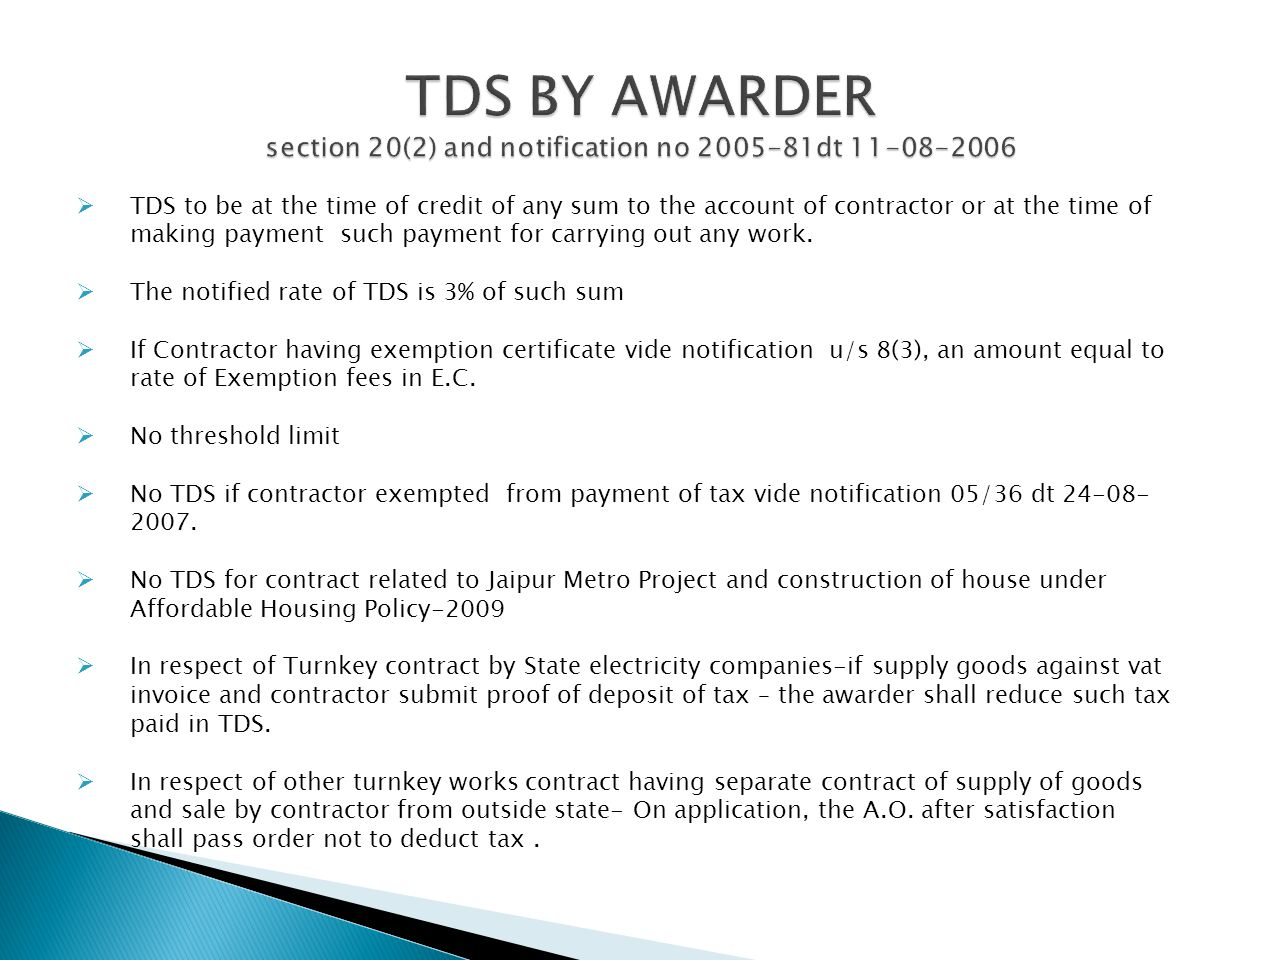 TDS BY AWARDER section 20(2) and notification no 2005-81dt 11-08-2006 TDS to be at the time of credit of any sum to the account of contractor or at the time of making payment such payment for carrying out any work.